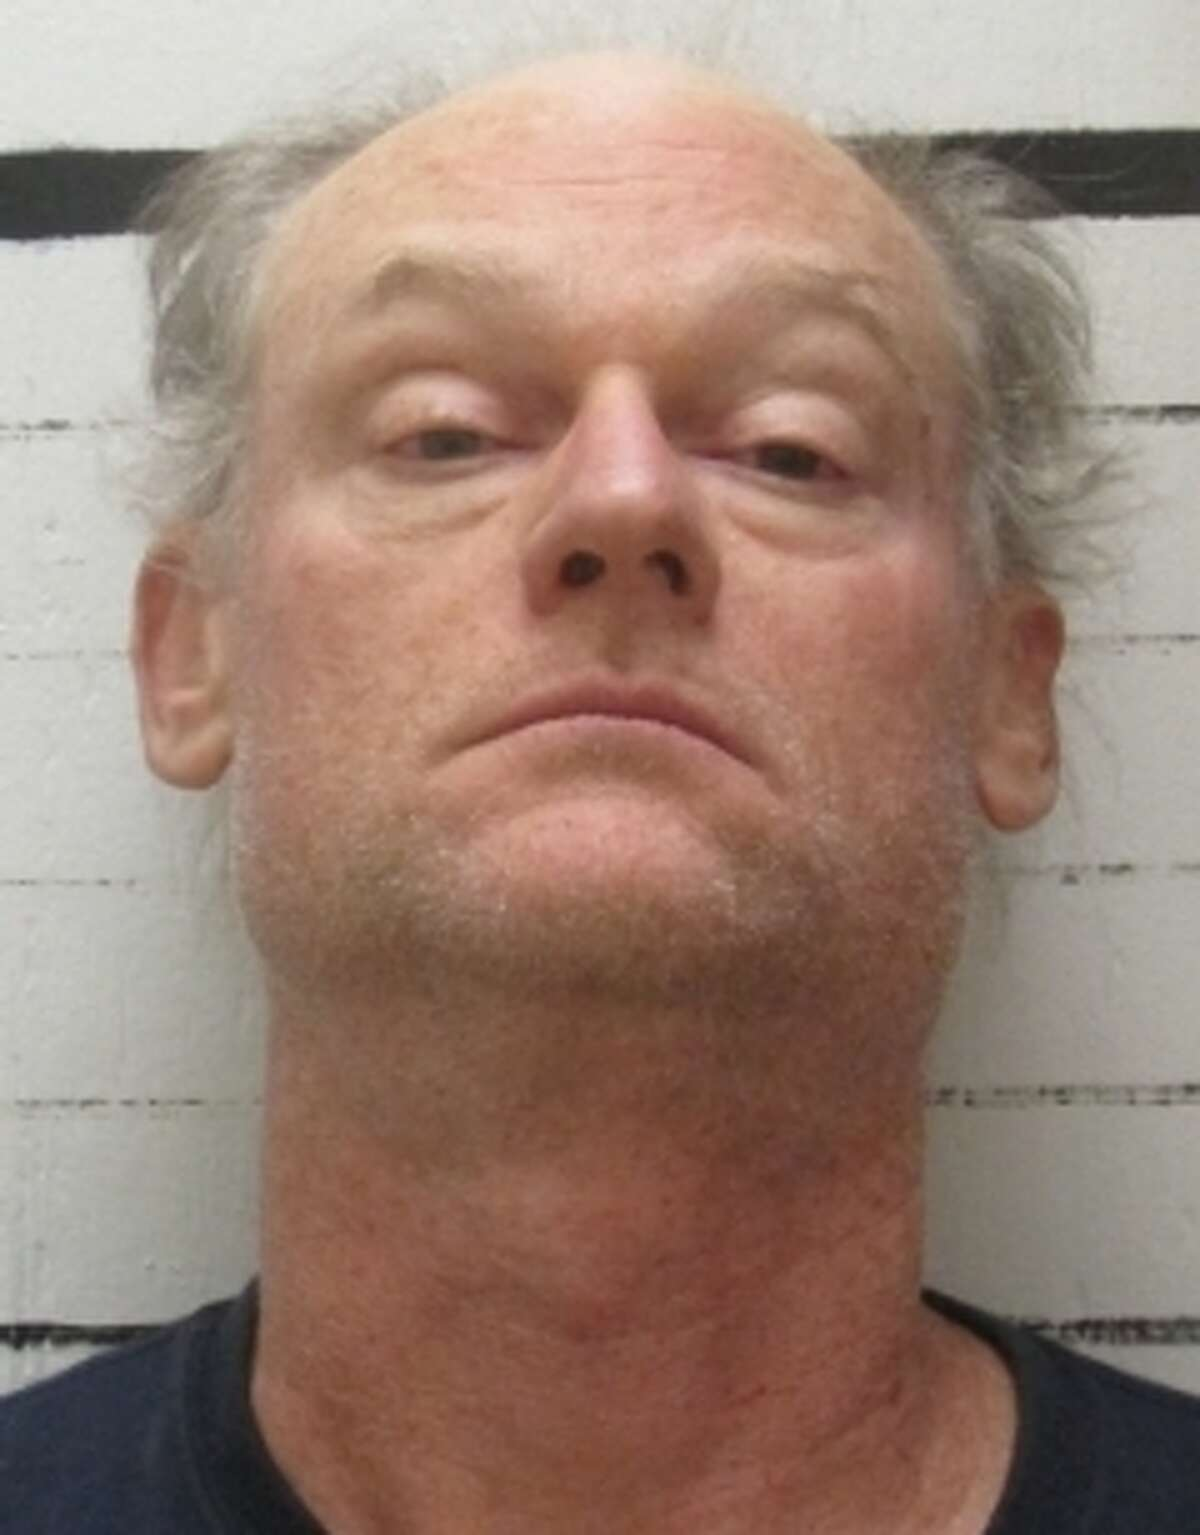 Deputies arrested an Oklahoma farmer after arriving on the scene of his Muskogee ranch and found graphic scene of more than three dozen dead horses and cows.